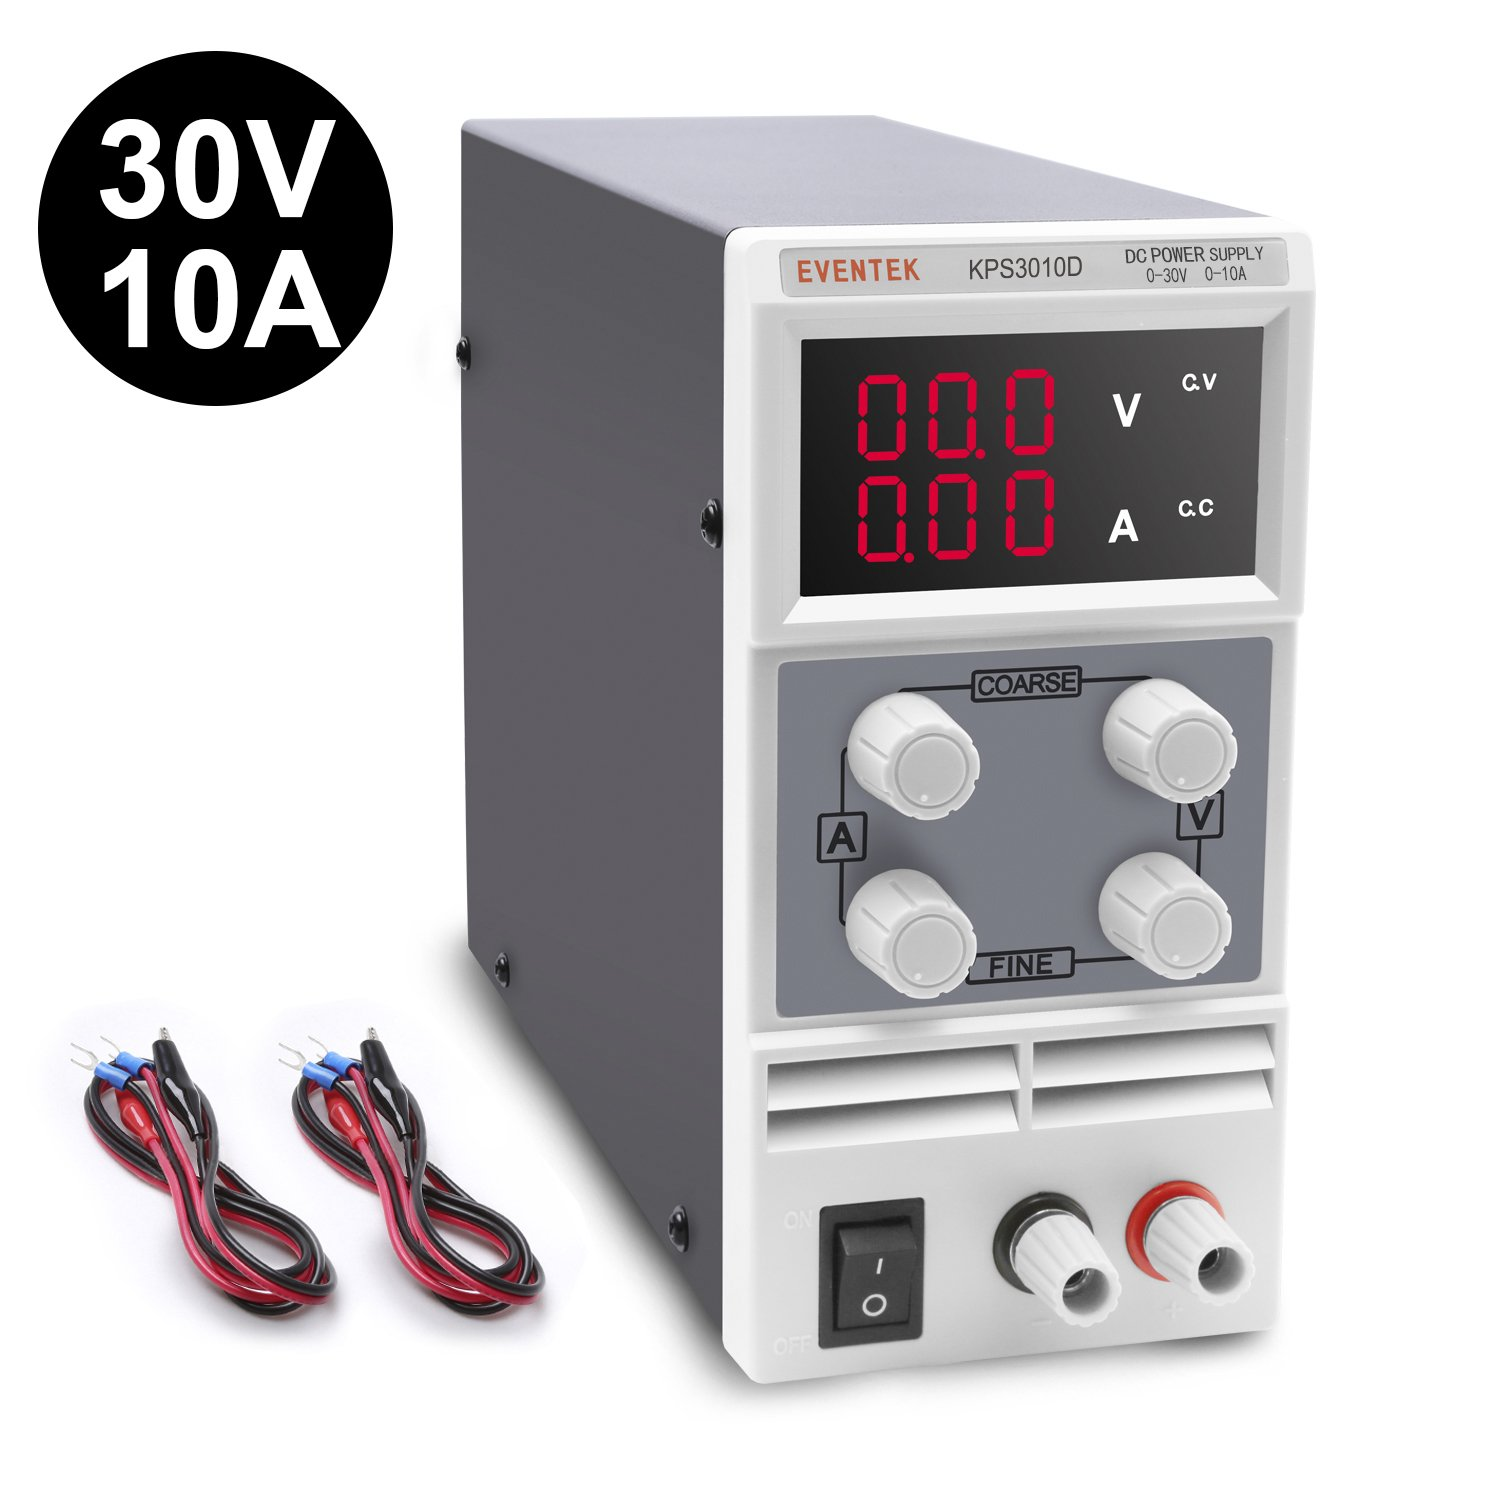 Dc Power Supply Variable 0 30 V 10 A Eventek Kps3010d Voltagecontrolledstatevariablefilter Powersupplycircuit Adjustable Switching Regulated Digital With Alligator Leads Us Cord Used For